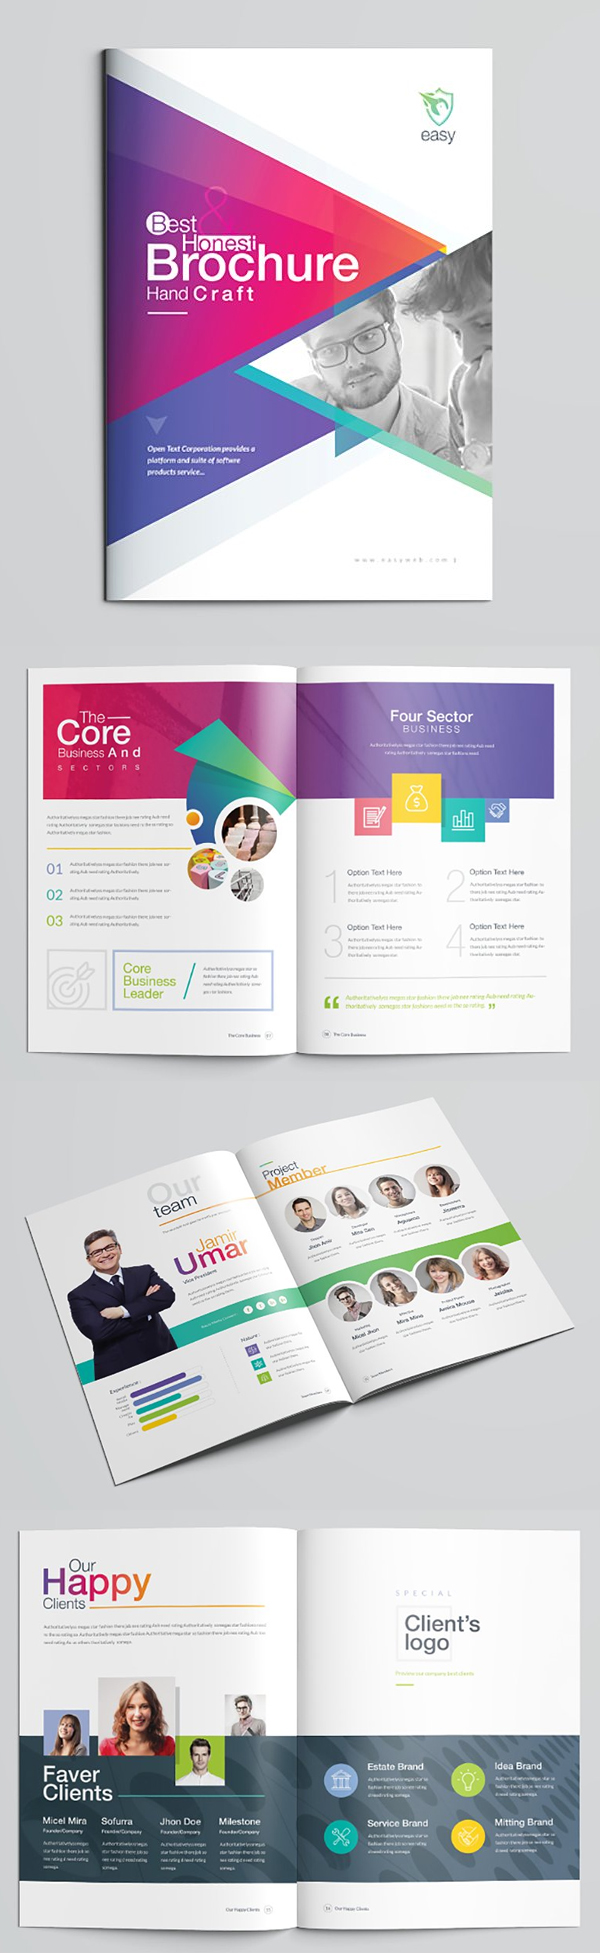 Brochure Catalog Templates 2019 | Design | Graphic Design